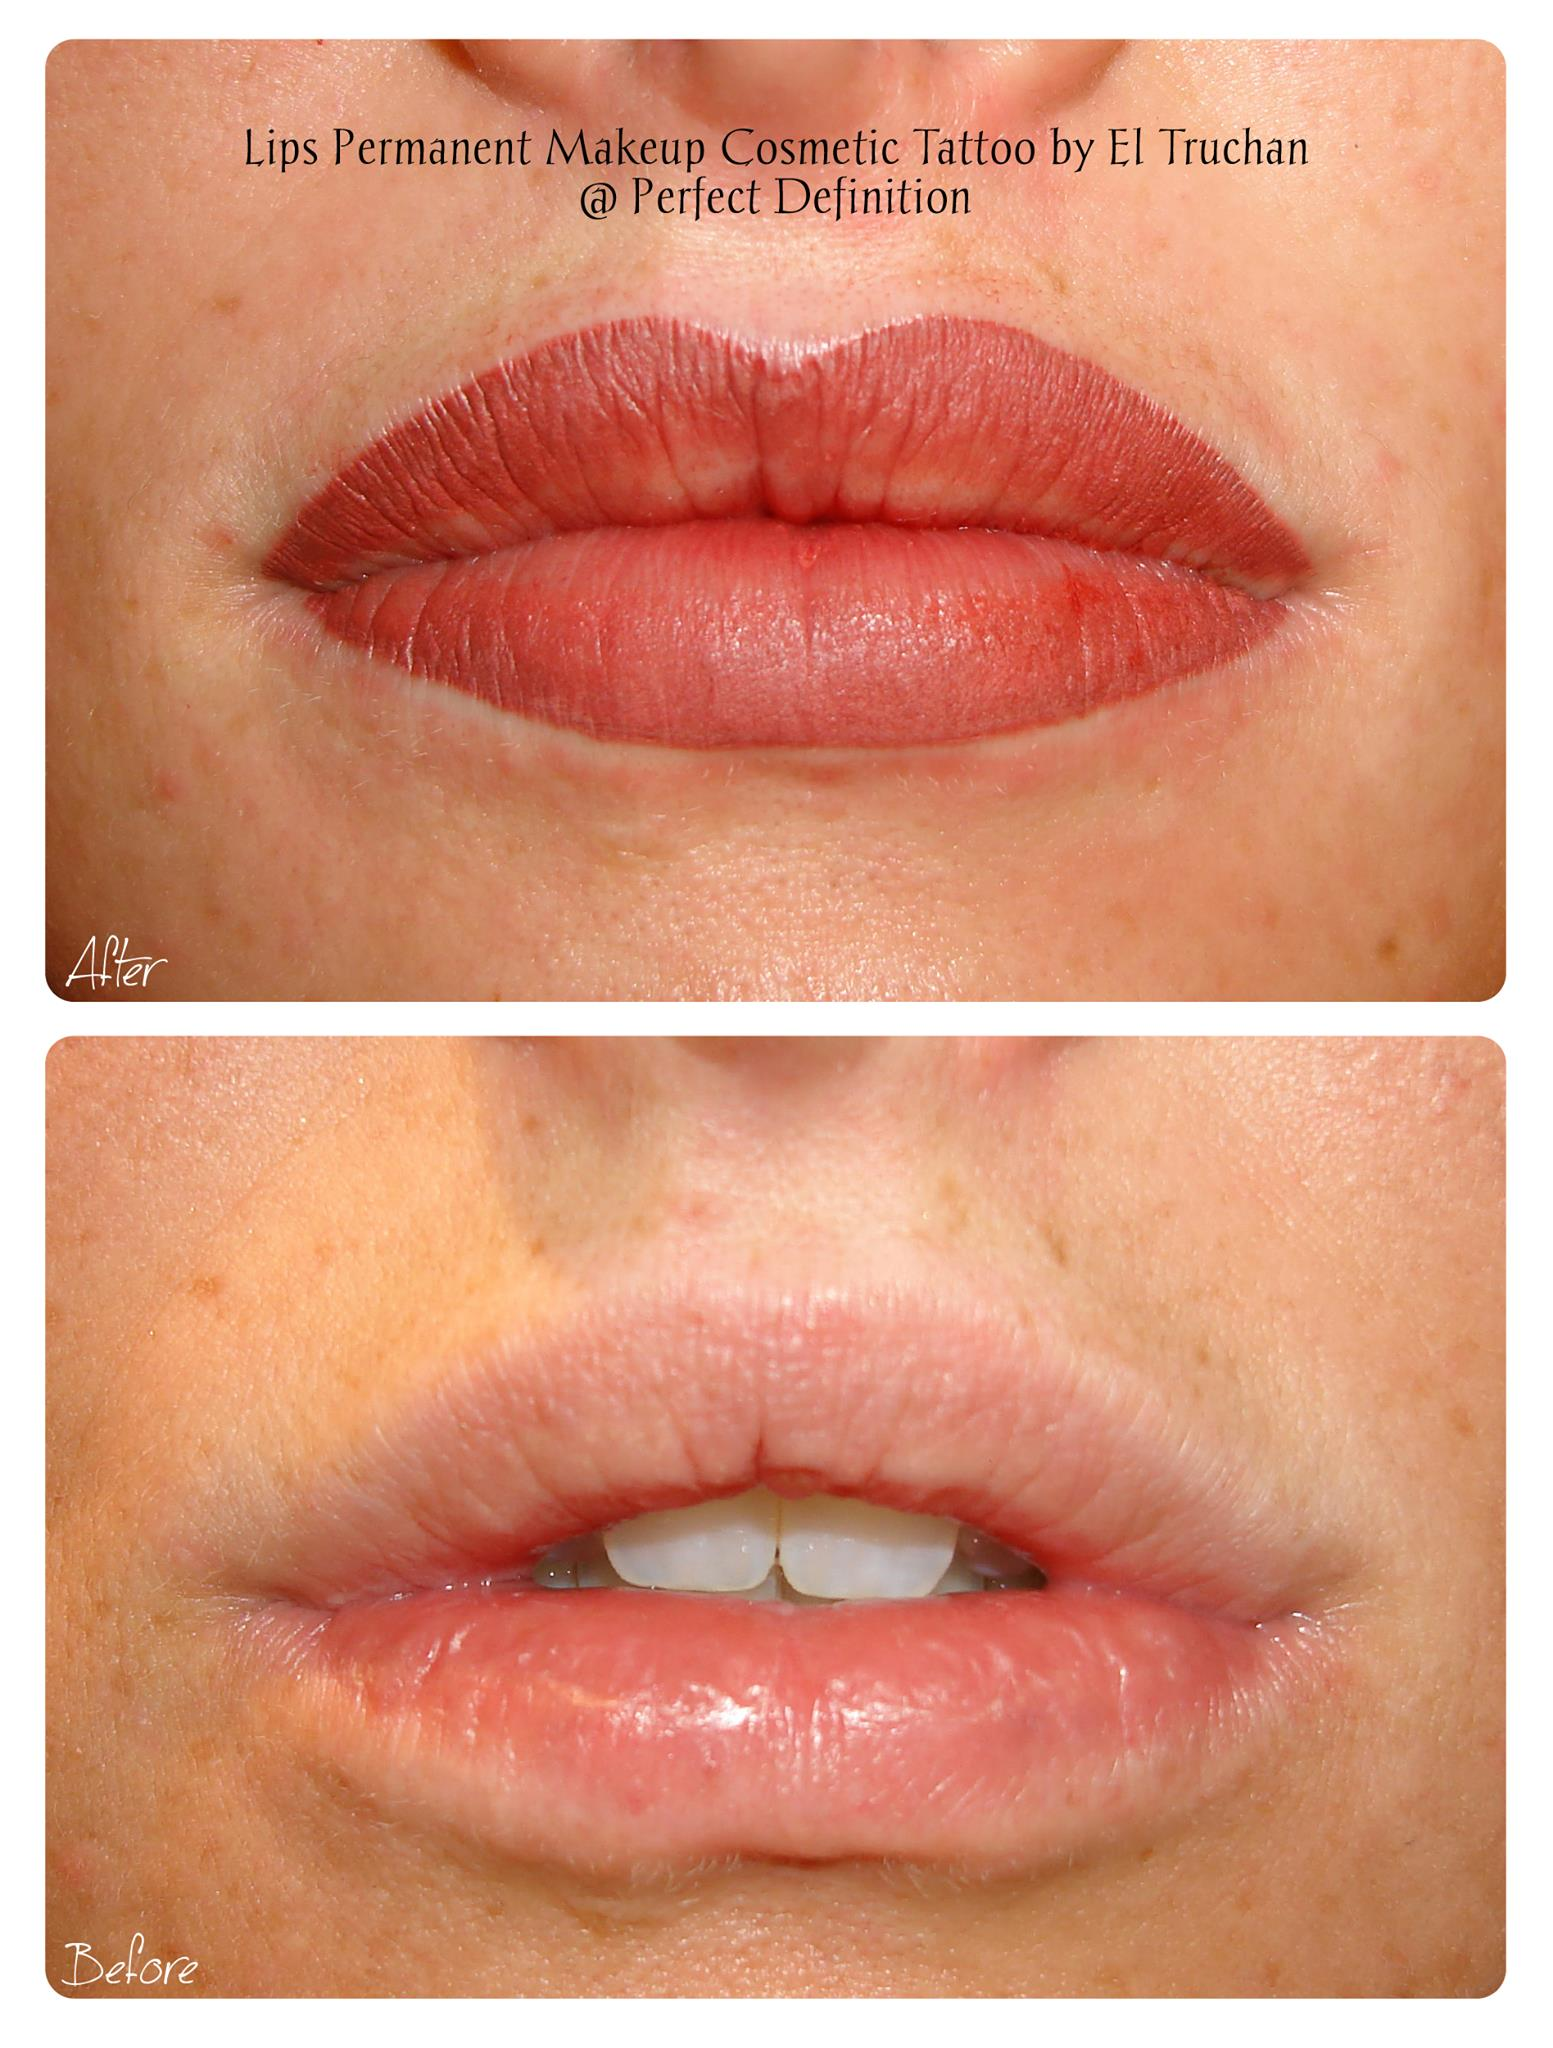 Lips Permanent Makeup Cosmetic Tattoo